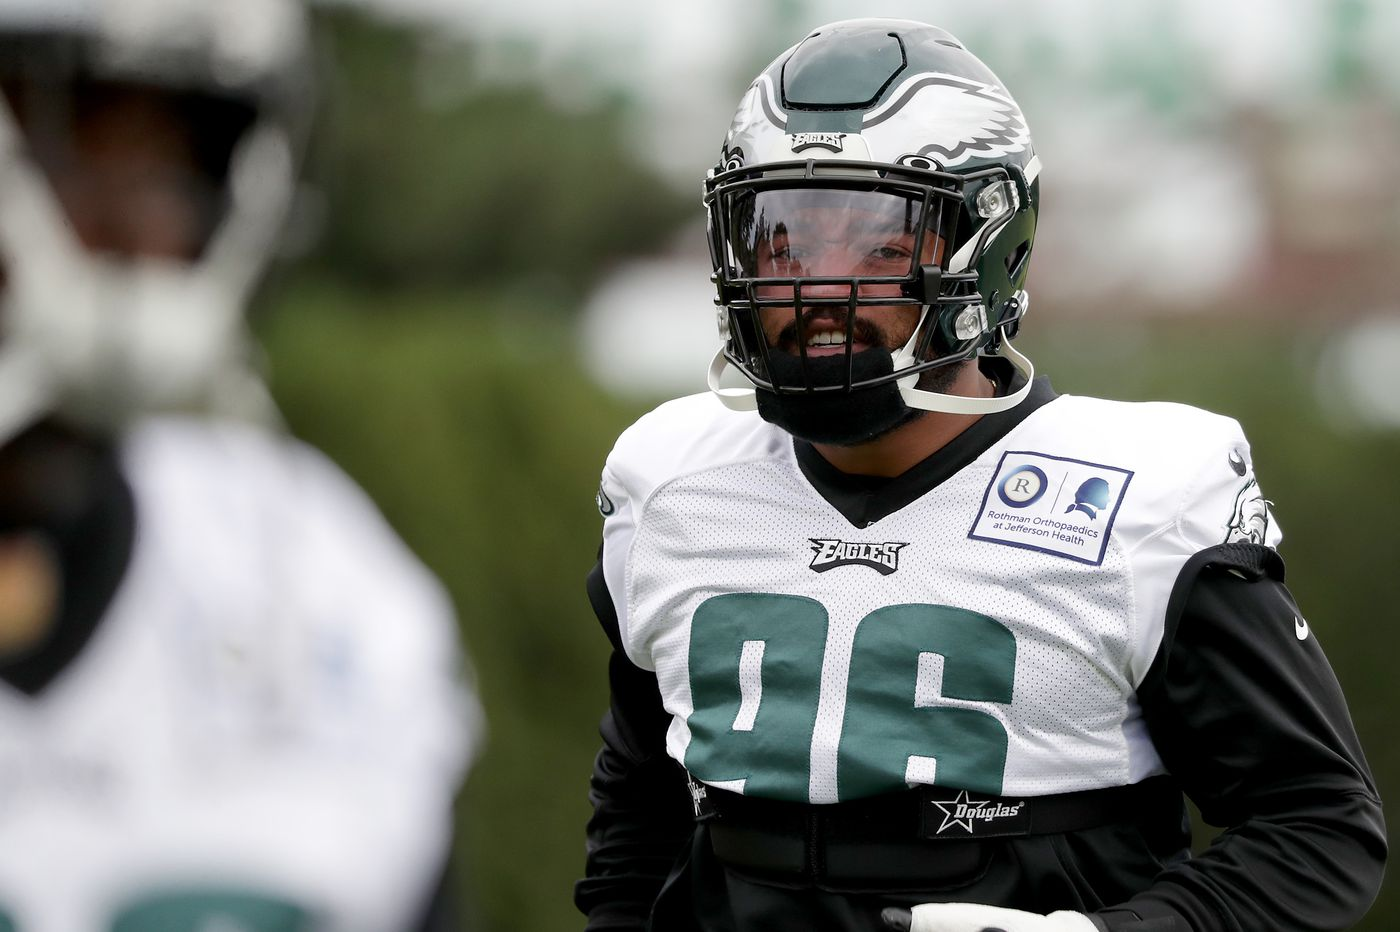 With Eagles DE Derek Barnett, it's OK to look on the bright side of the player he could be | Mike Sielski